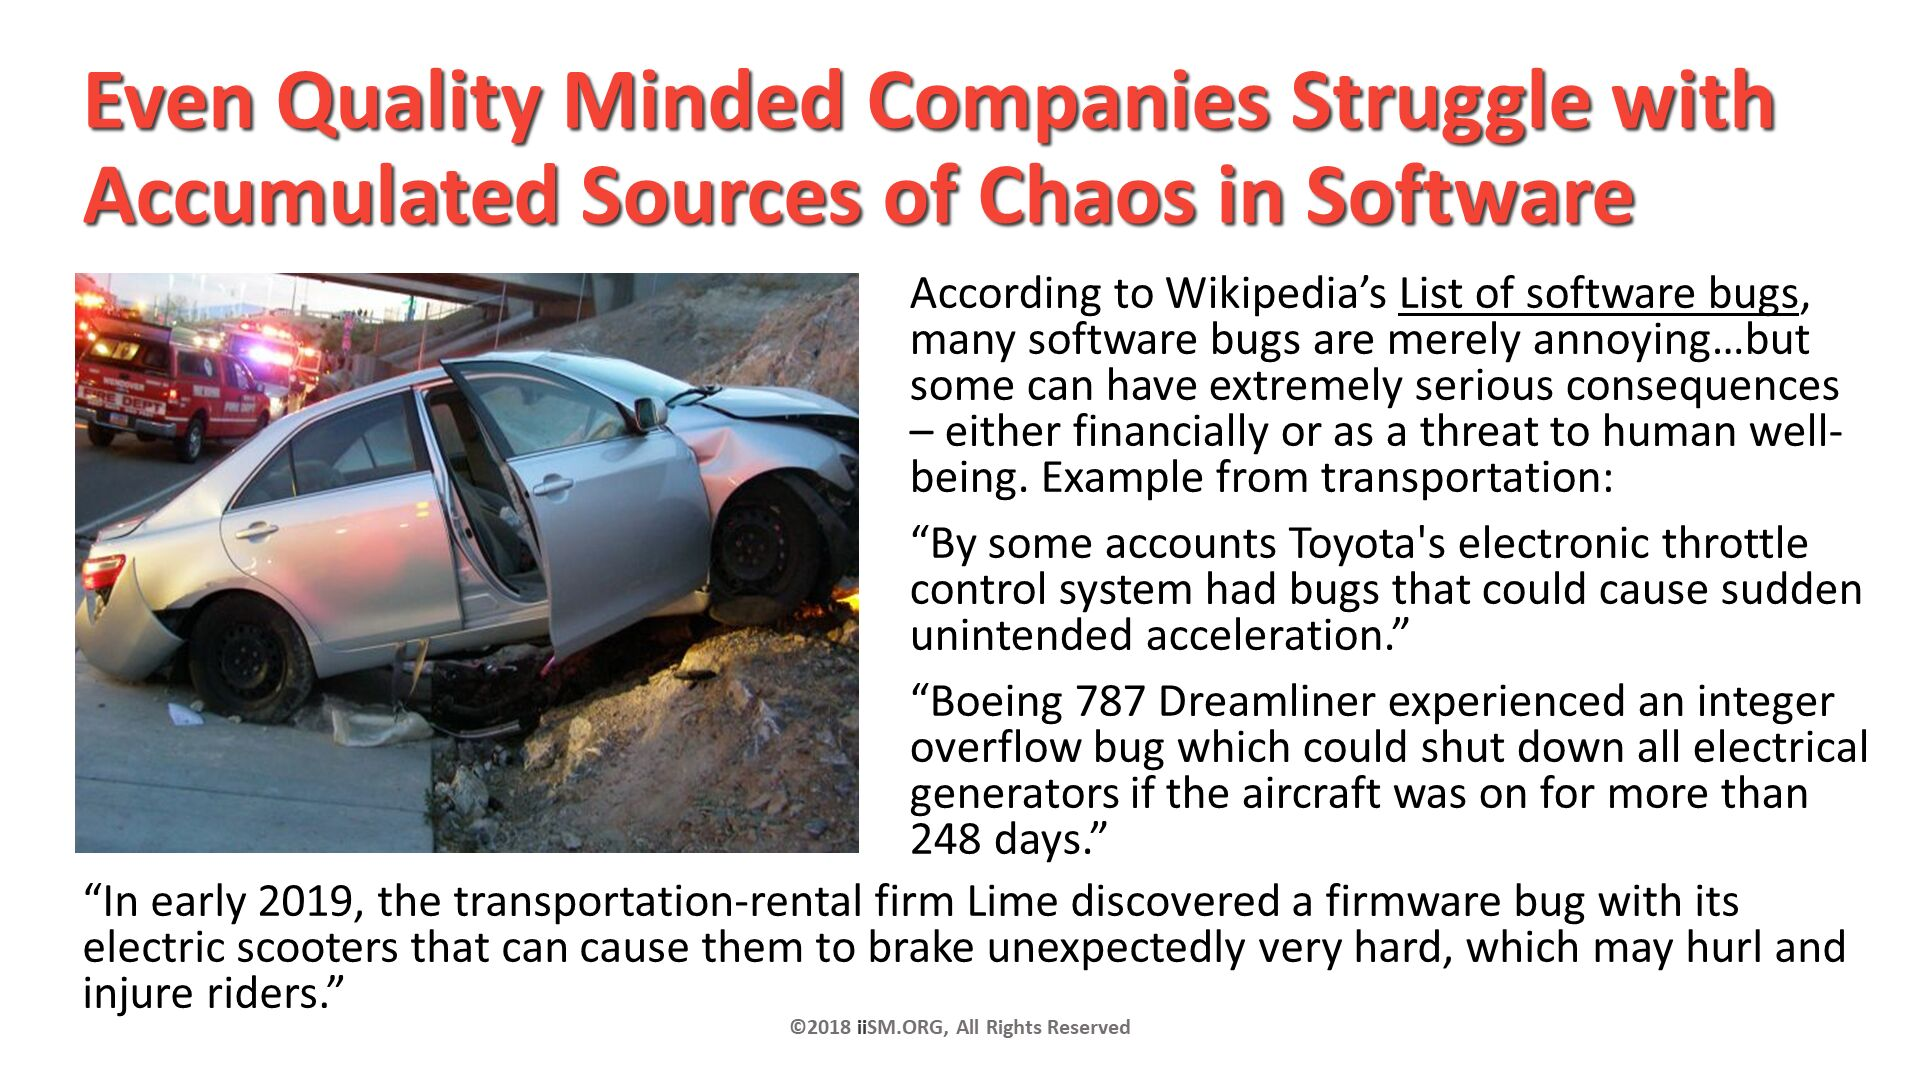 "Even Quality Minded Companies Struggle with Accumulated Sources of Chaos in Software. According to Wikipedia's List of software bugs, many software bugs are merely annoying…but some can have extremely serious consequences – either financially or as a threat to human well-being. Example from transportation:  ""By some accounts Toyota's electronic throttle control system had bugs that could cause sudden unintended acceleration."" ""Boeing 787 Dreamliner experienced an integer overflow bug which could shut down all electrical generators if the aircraft was on for more than 248 days."" . ©2018 iiSM.ORG, All Rights Reserved. ""In early 2019, the transportation-rental firm Lime discovered a firmware bug with its electric scooters that can cause them to brake unexpectedly very hard, which may hurl and injure riders."" ."